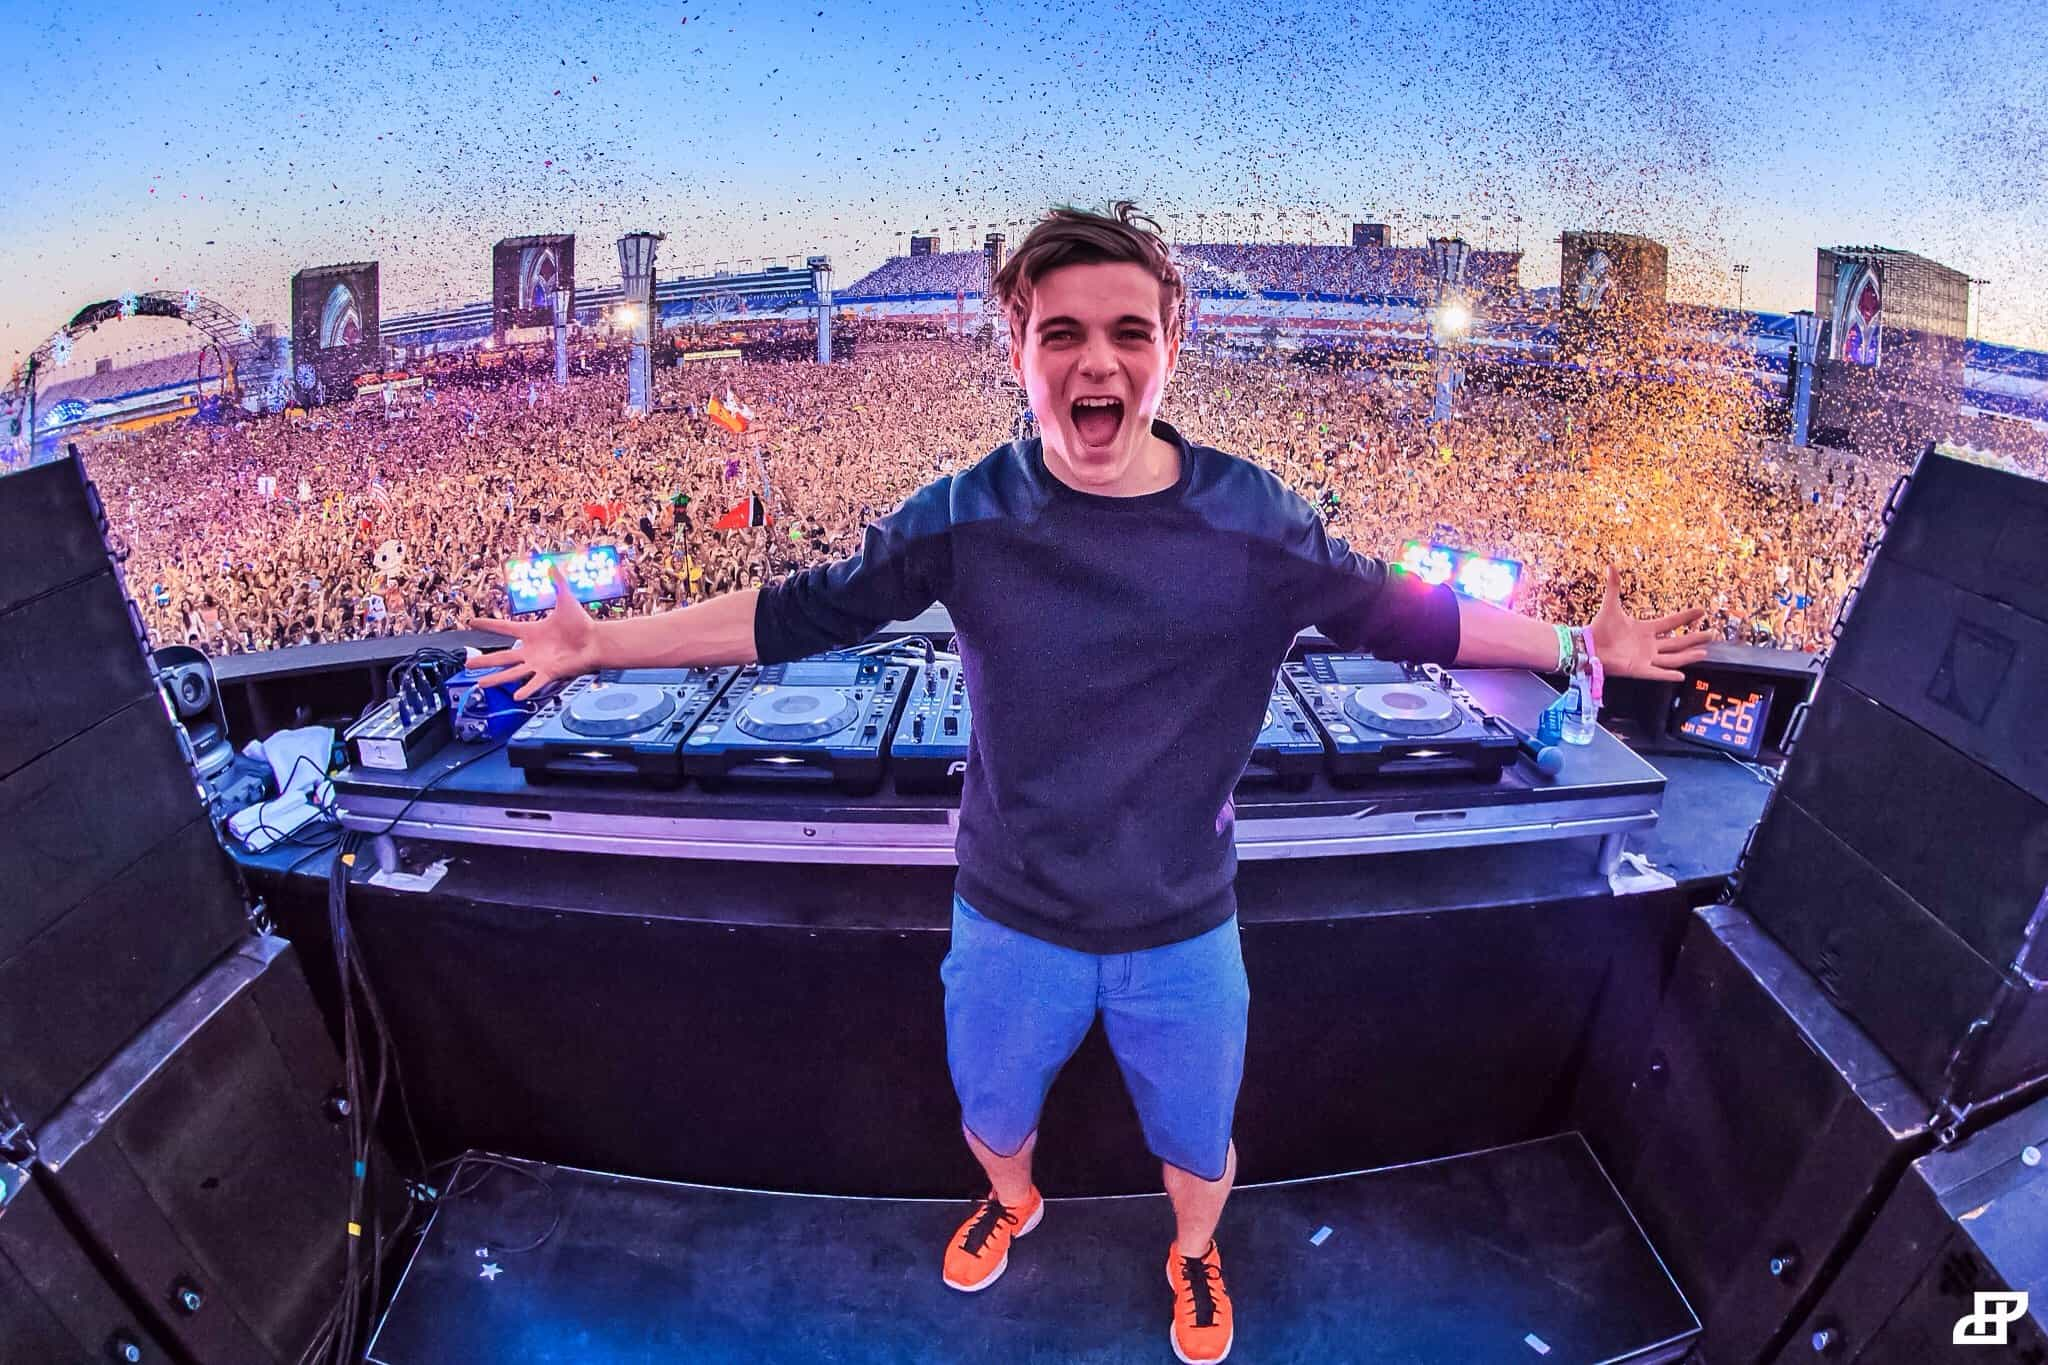 Martin Garrix teams up with David Guetta & Afrojack for two collaborative tracks!